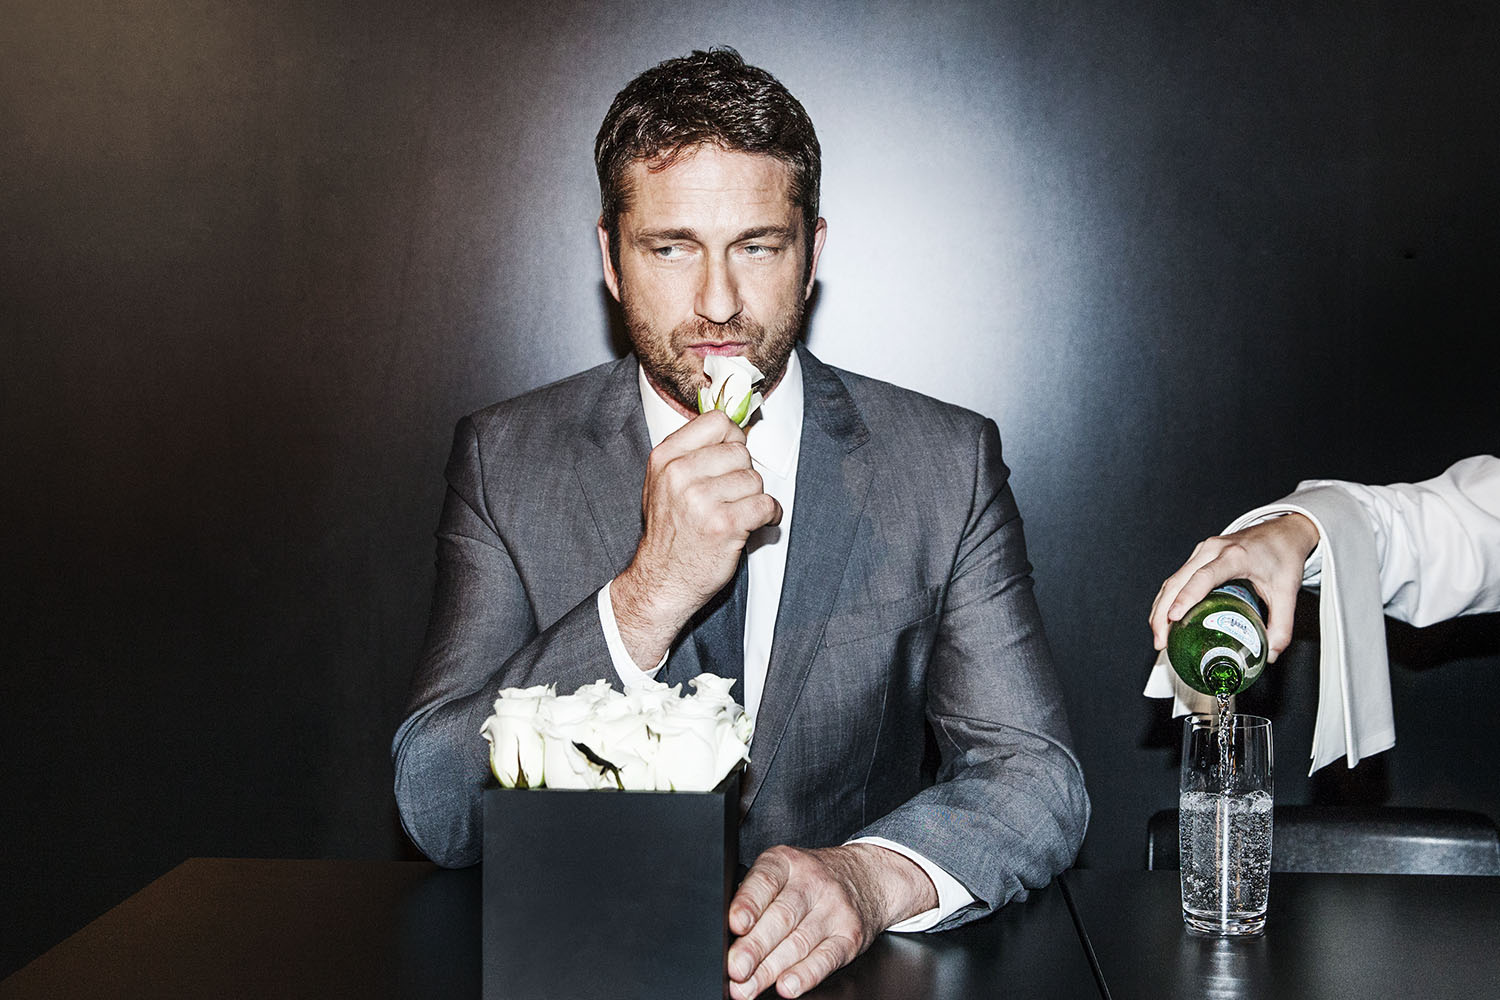 Gerard Butler - actor